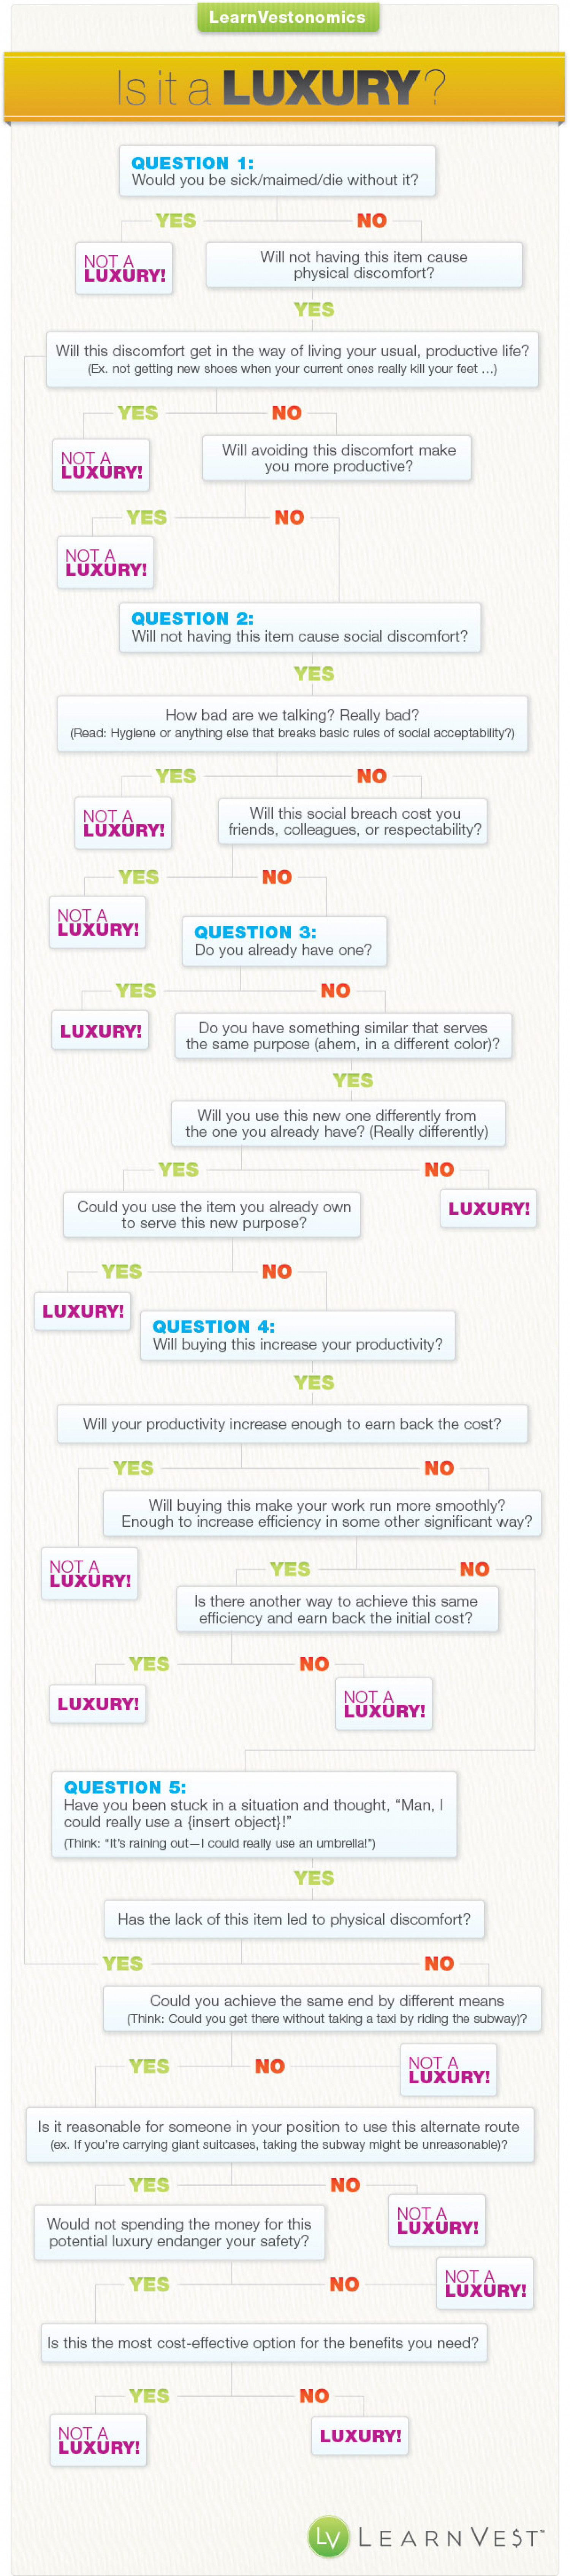 Is It A Luxury? Infographic